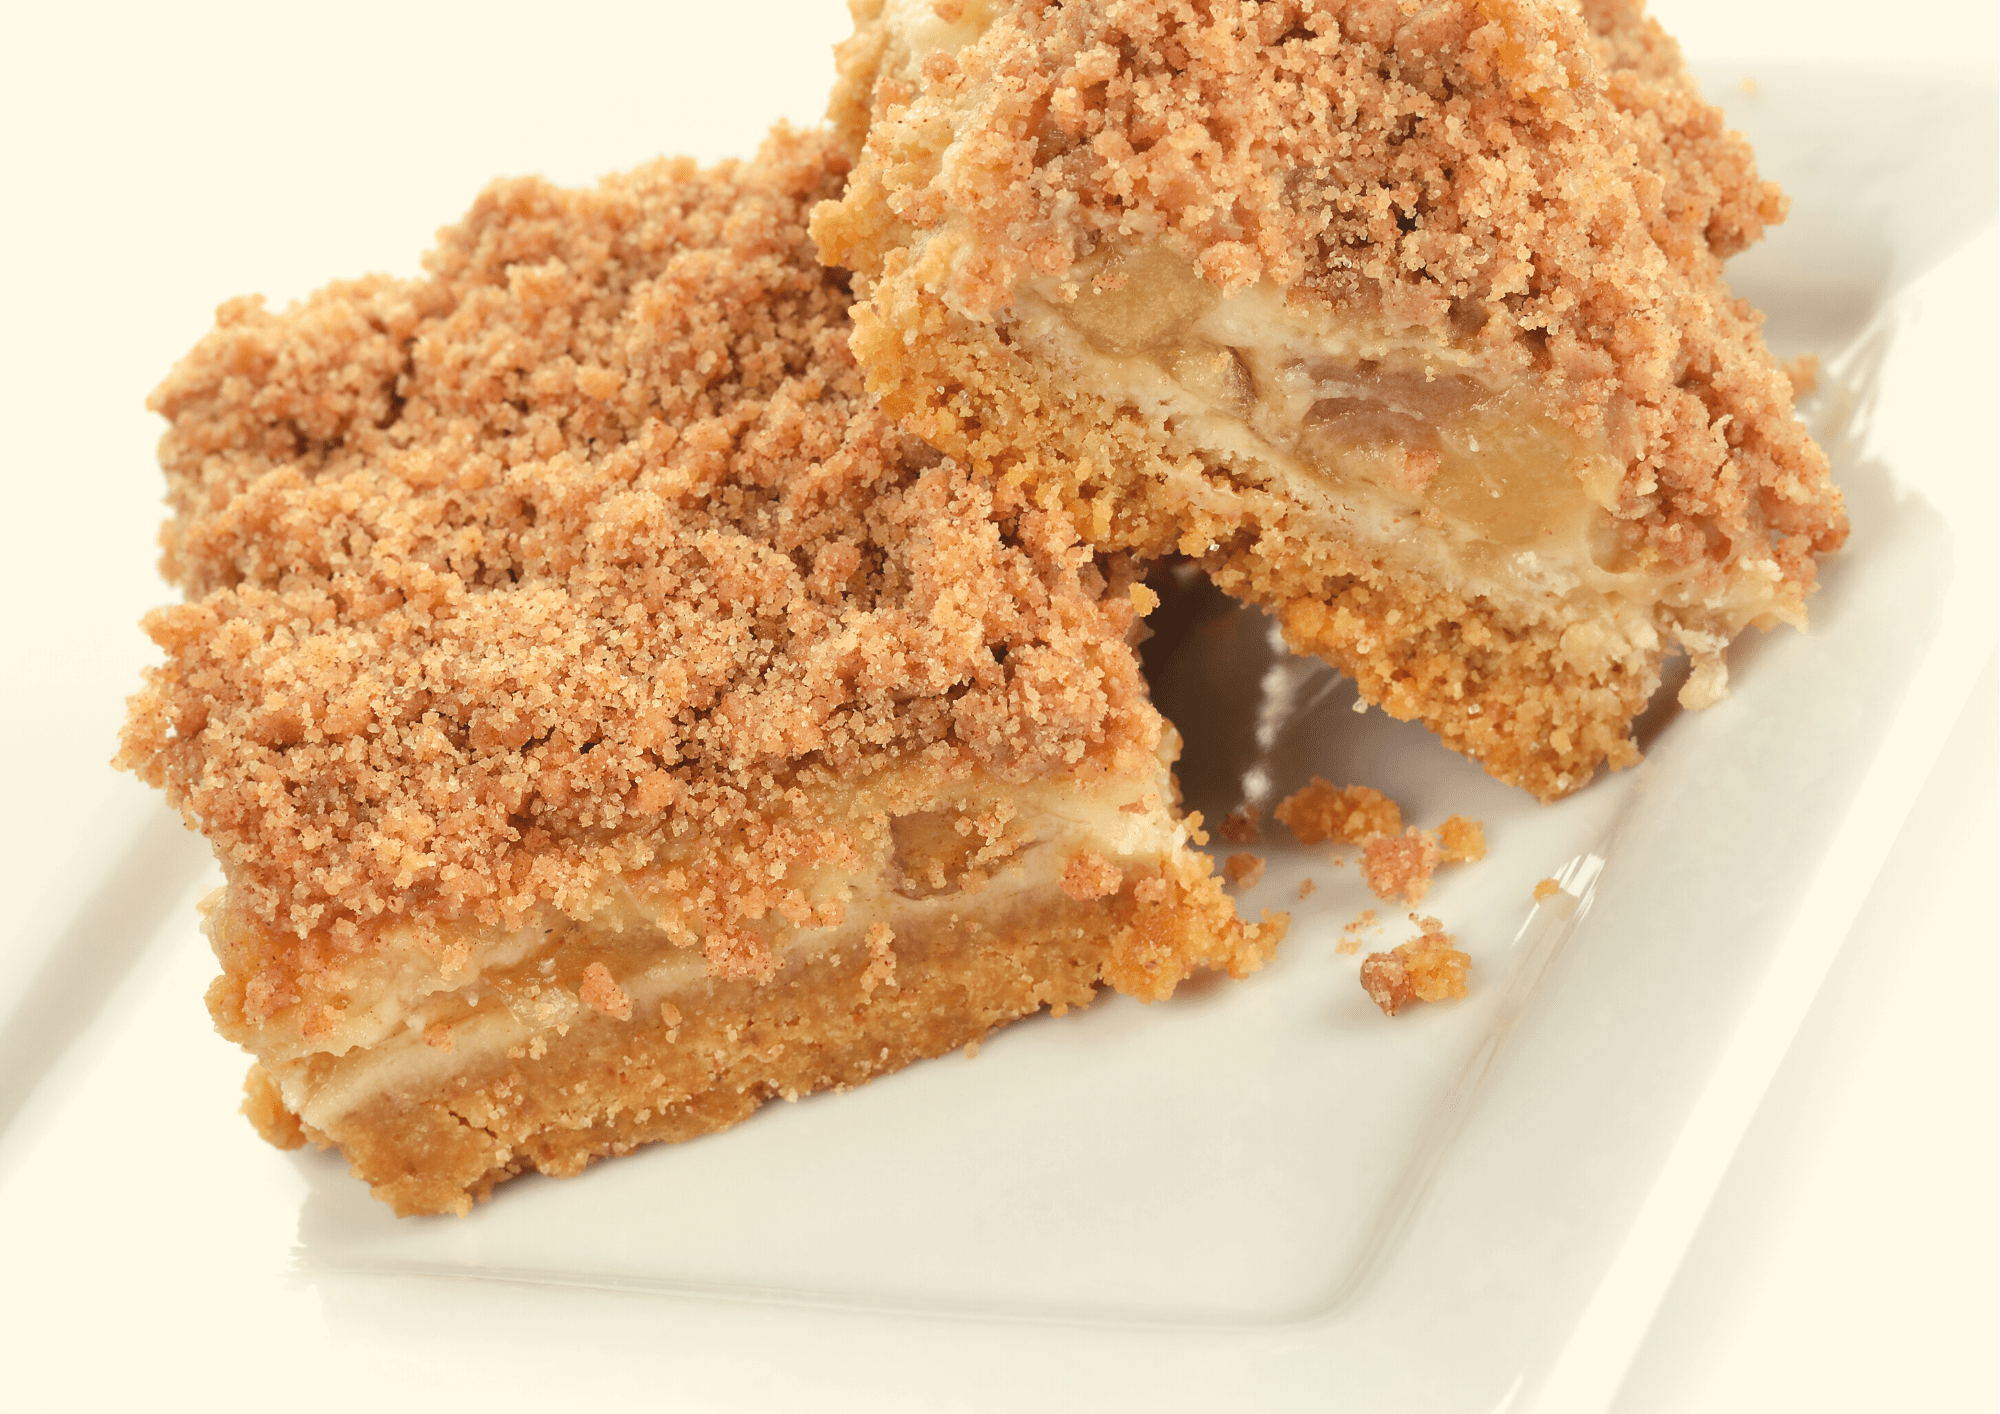 Make-ahead recipe for Christmas: Apple Pie Bars